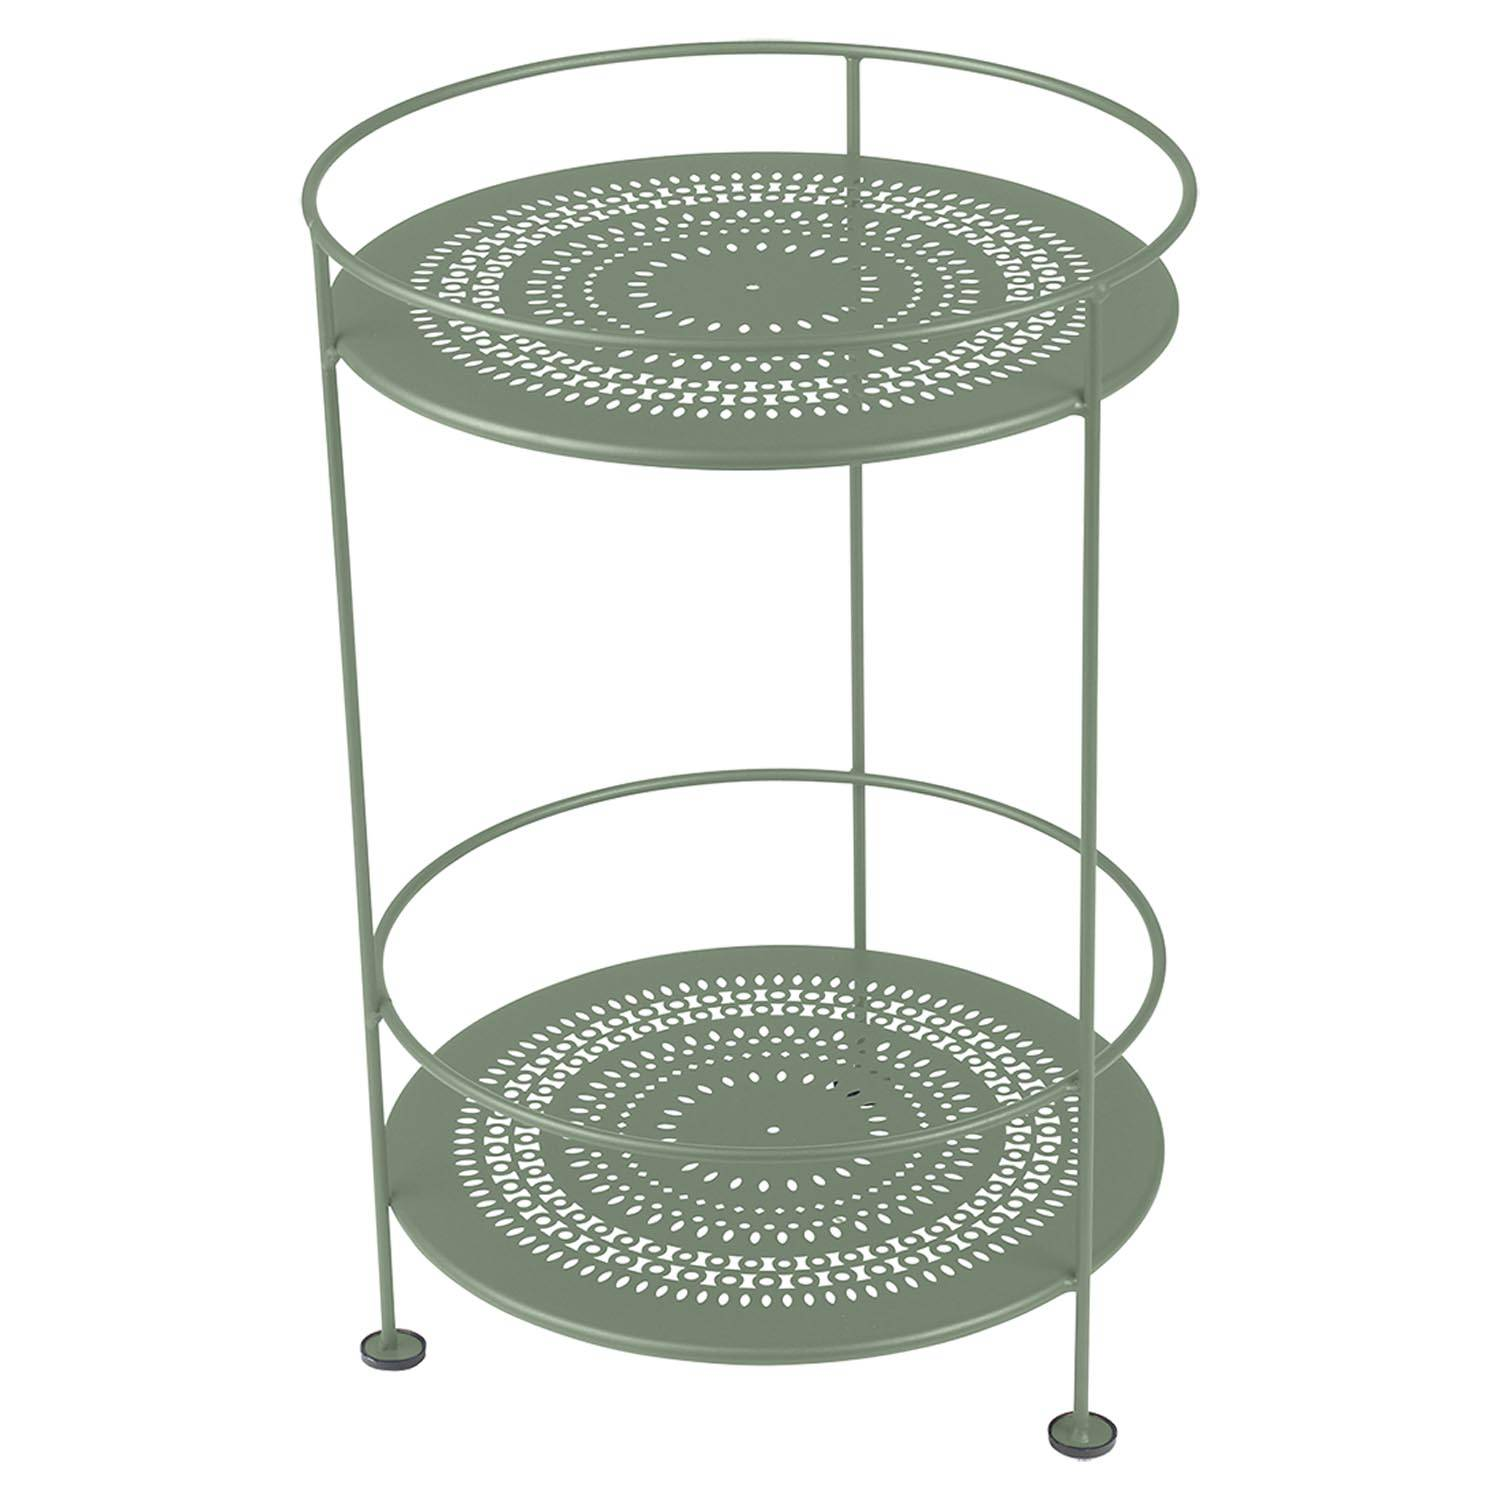 Fermob Small Table Perforated Ø40, Cactus